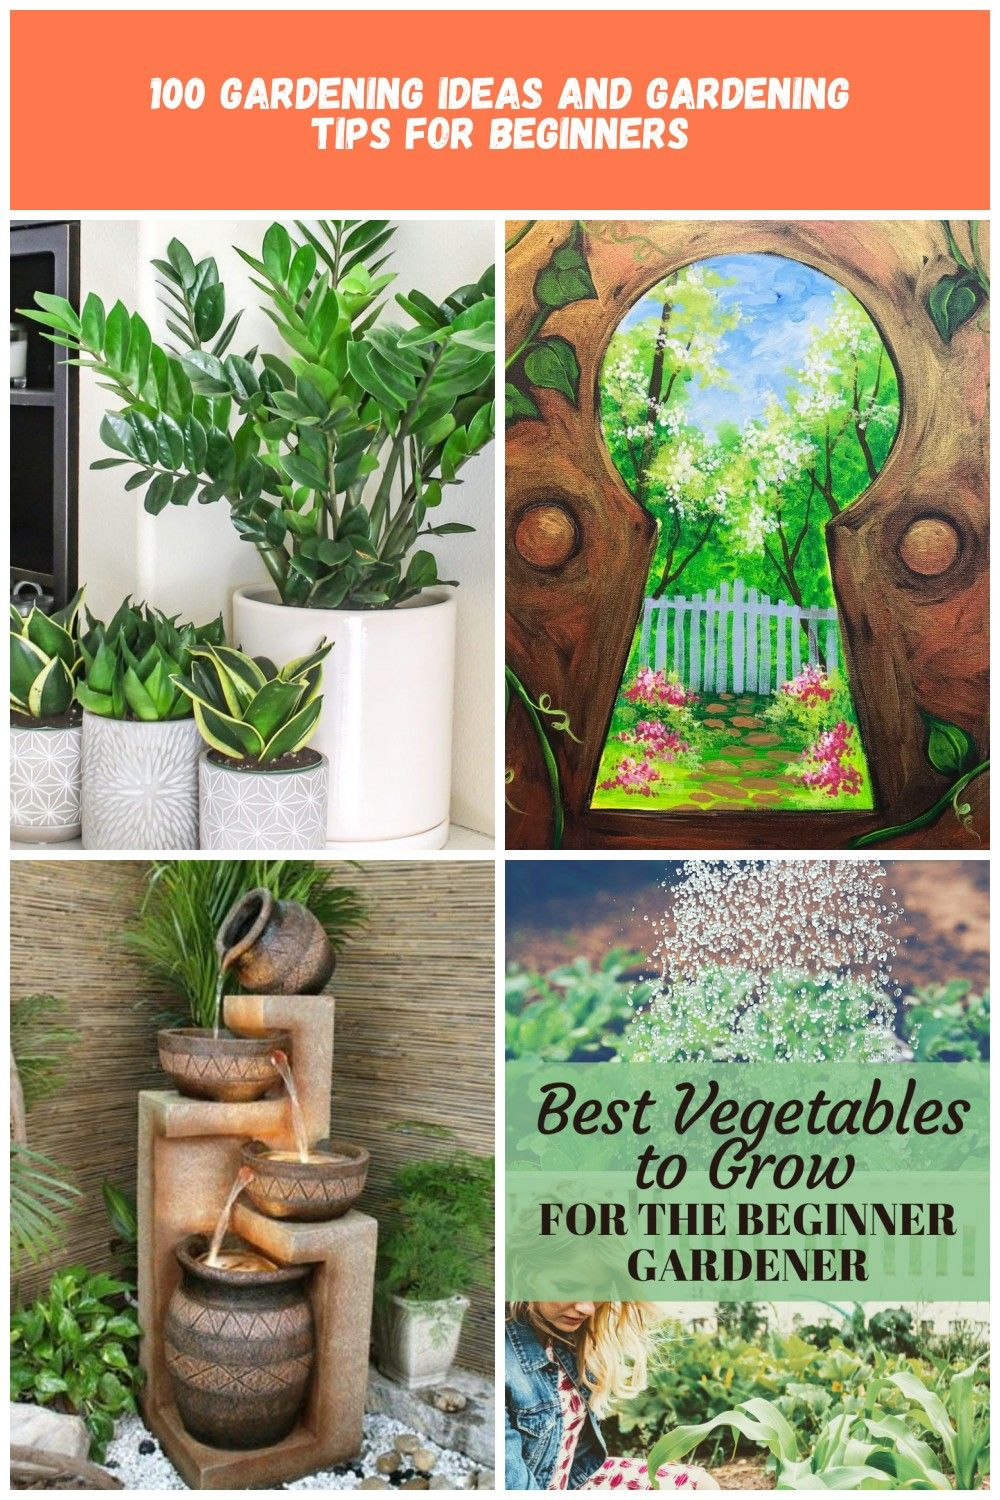 Top 8 low maintenance house plants for beginners  Garden For Beginners